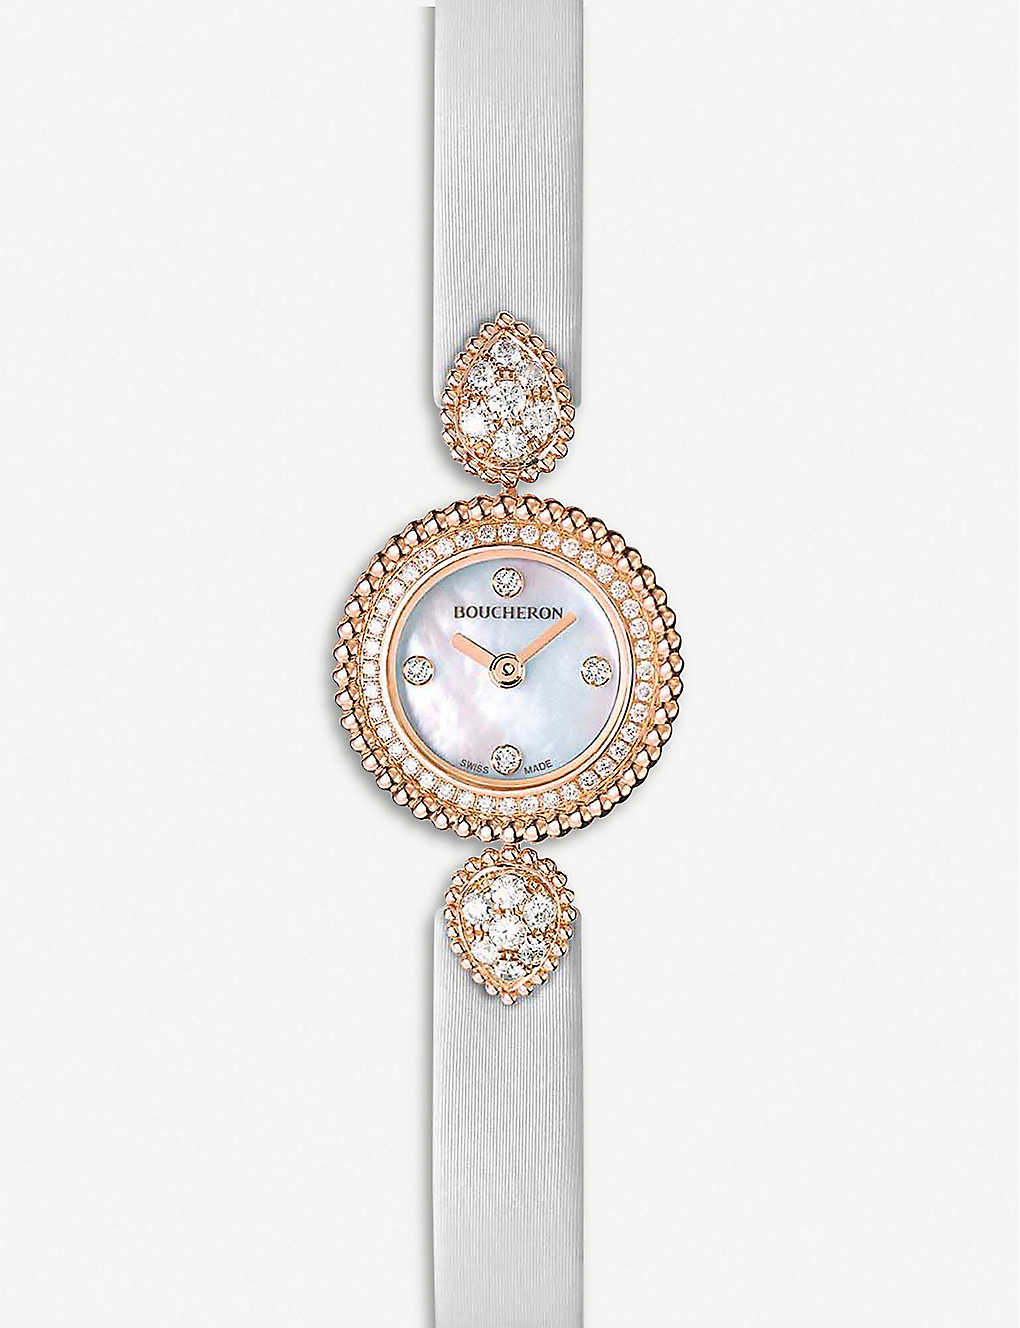 BOUCHERON: Serpent Boheme 18ct rose-gold, diamond and mother-of-pearl watch